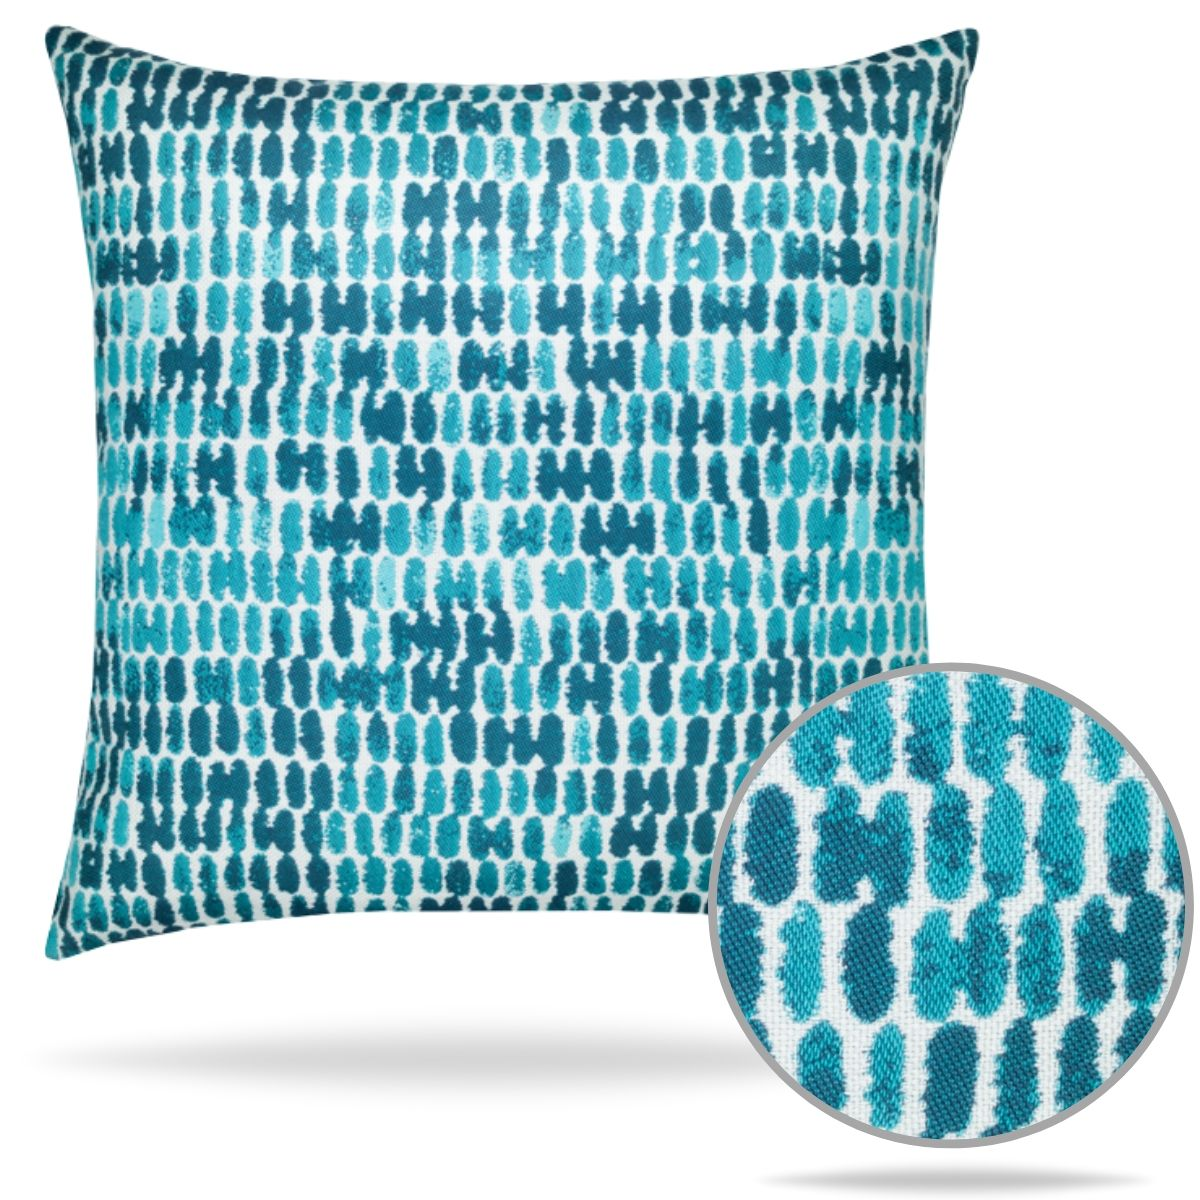 thumbprint-aruba-pillow-elaine-smith